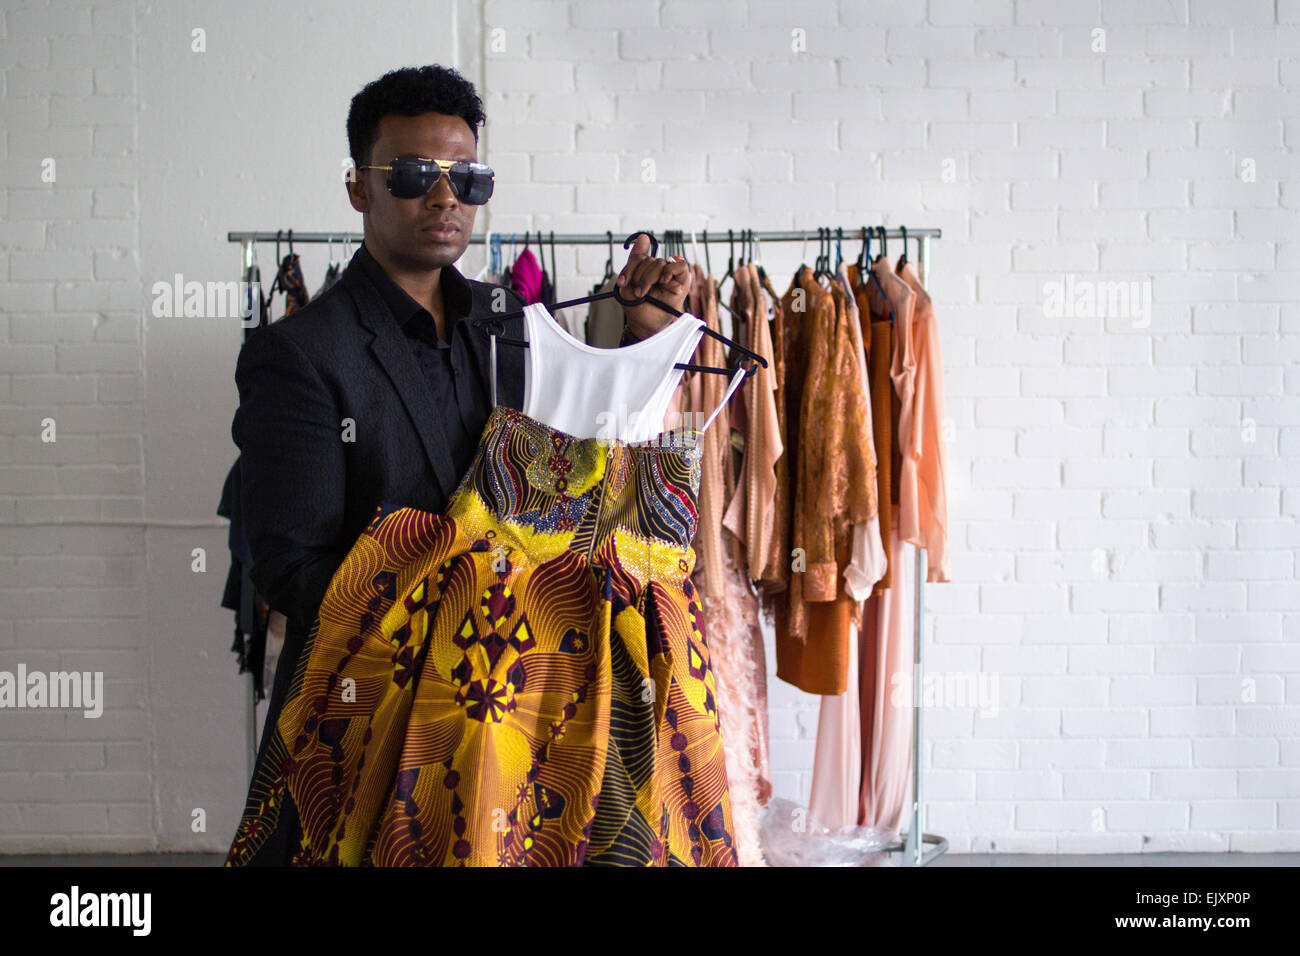 South African Fashion Designer David Tlale Poses With One Of His Stock Photo Alamy